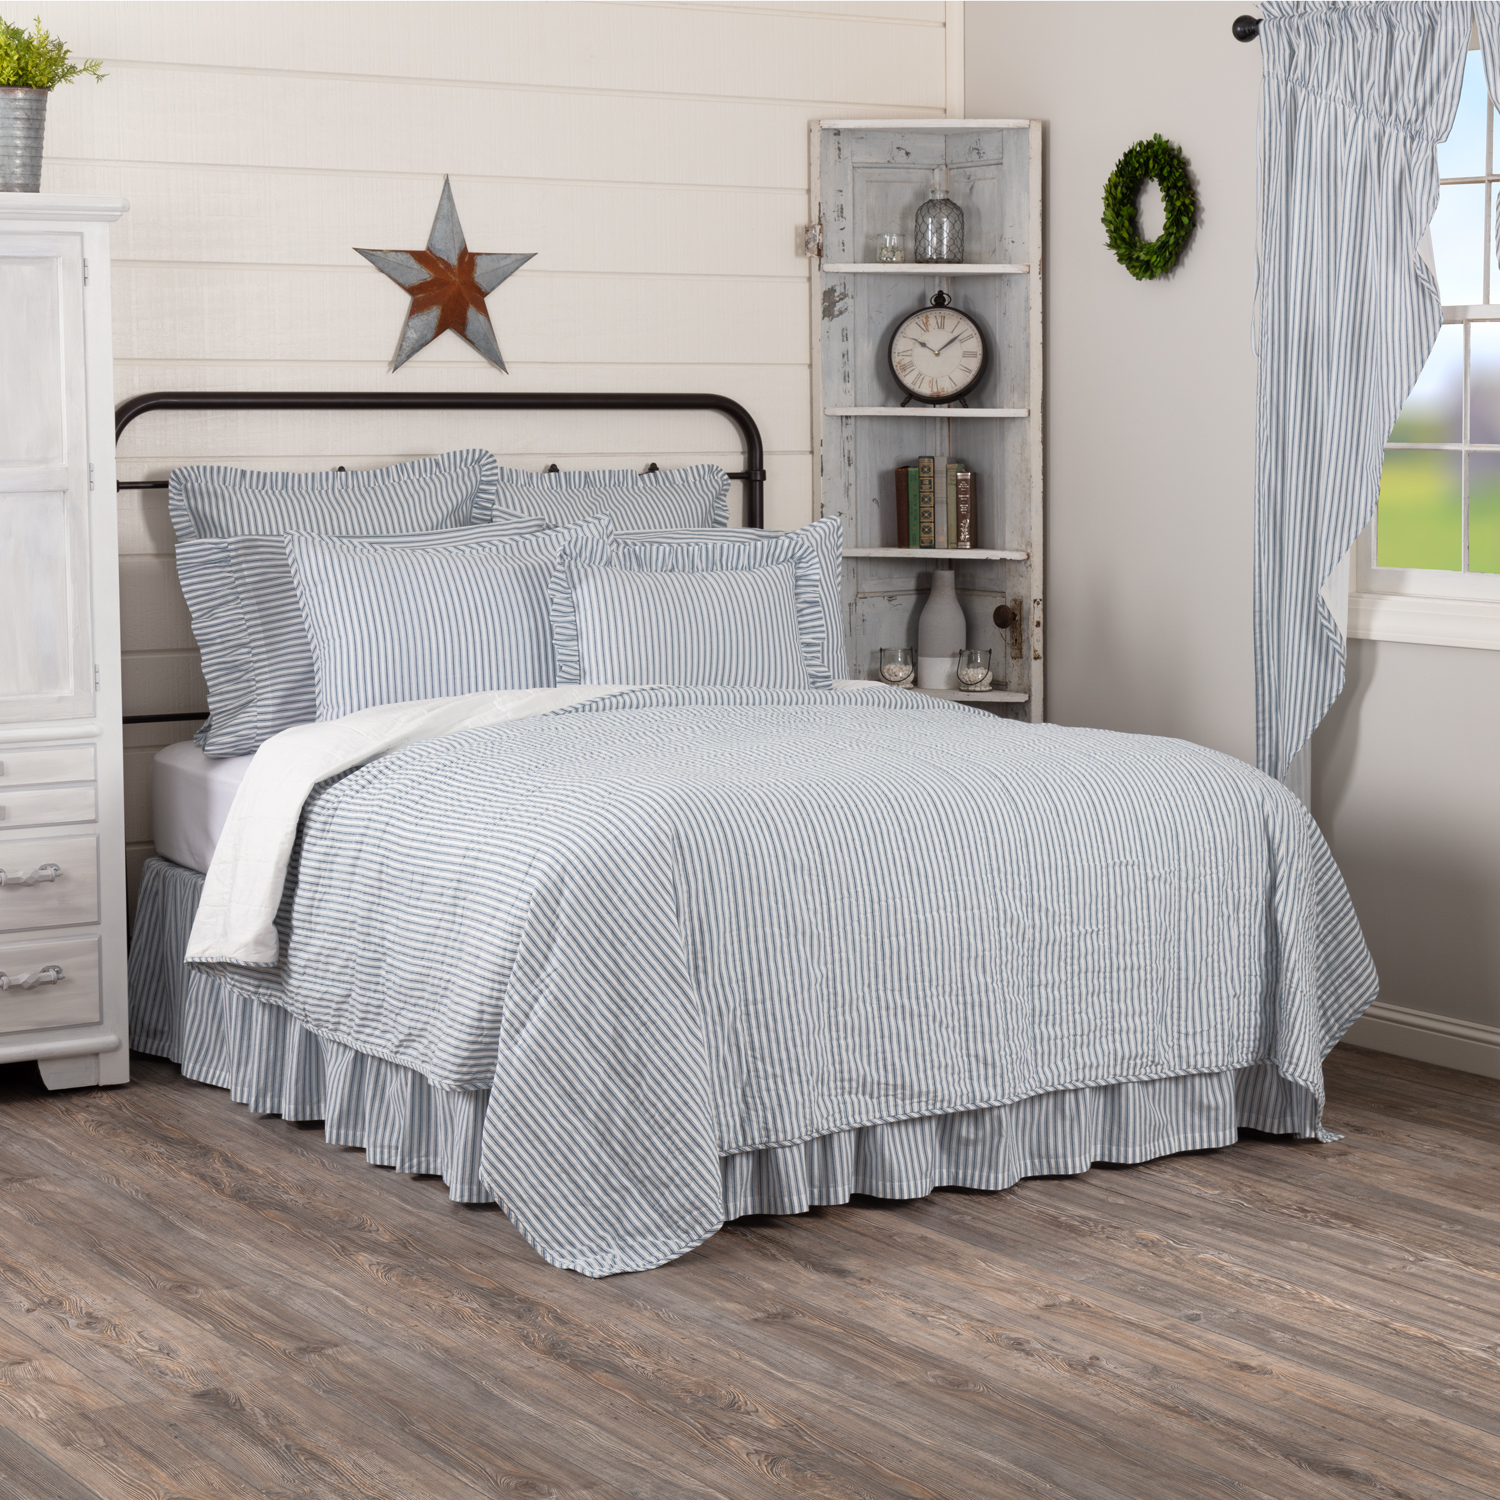 Dark Creme Charcoal White Farmhouse Bedding Miller Farm Charcoal Ticking Stripe Cotton Pre-Washed Striped King Coverlet